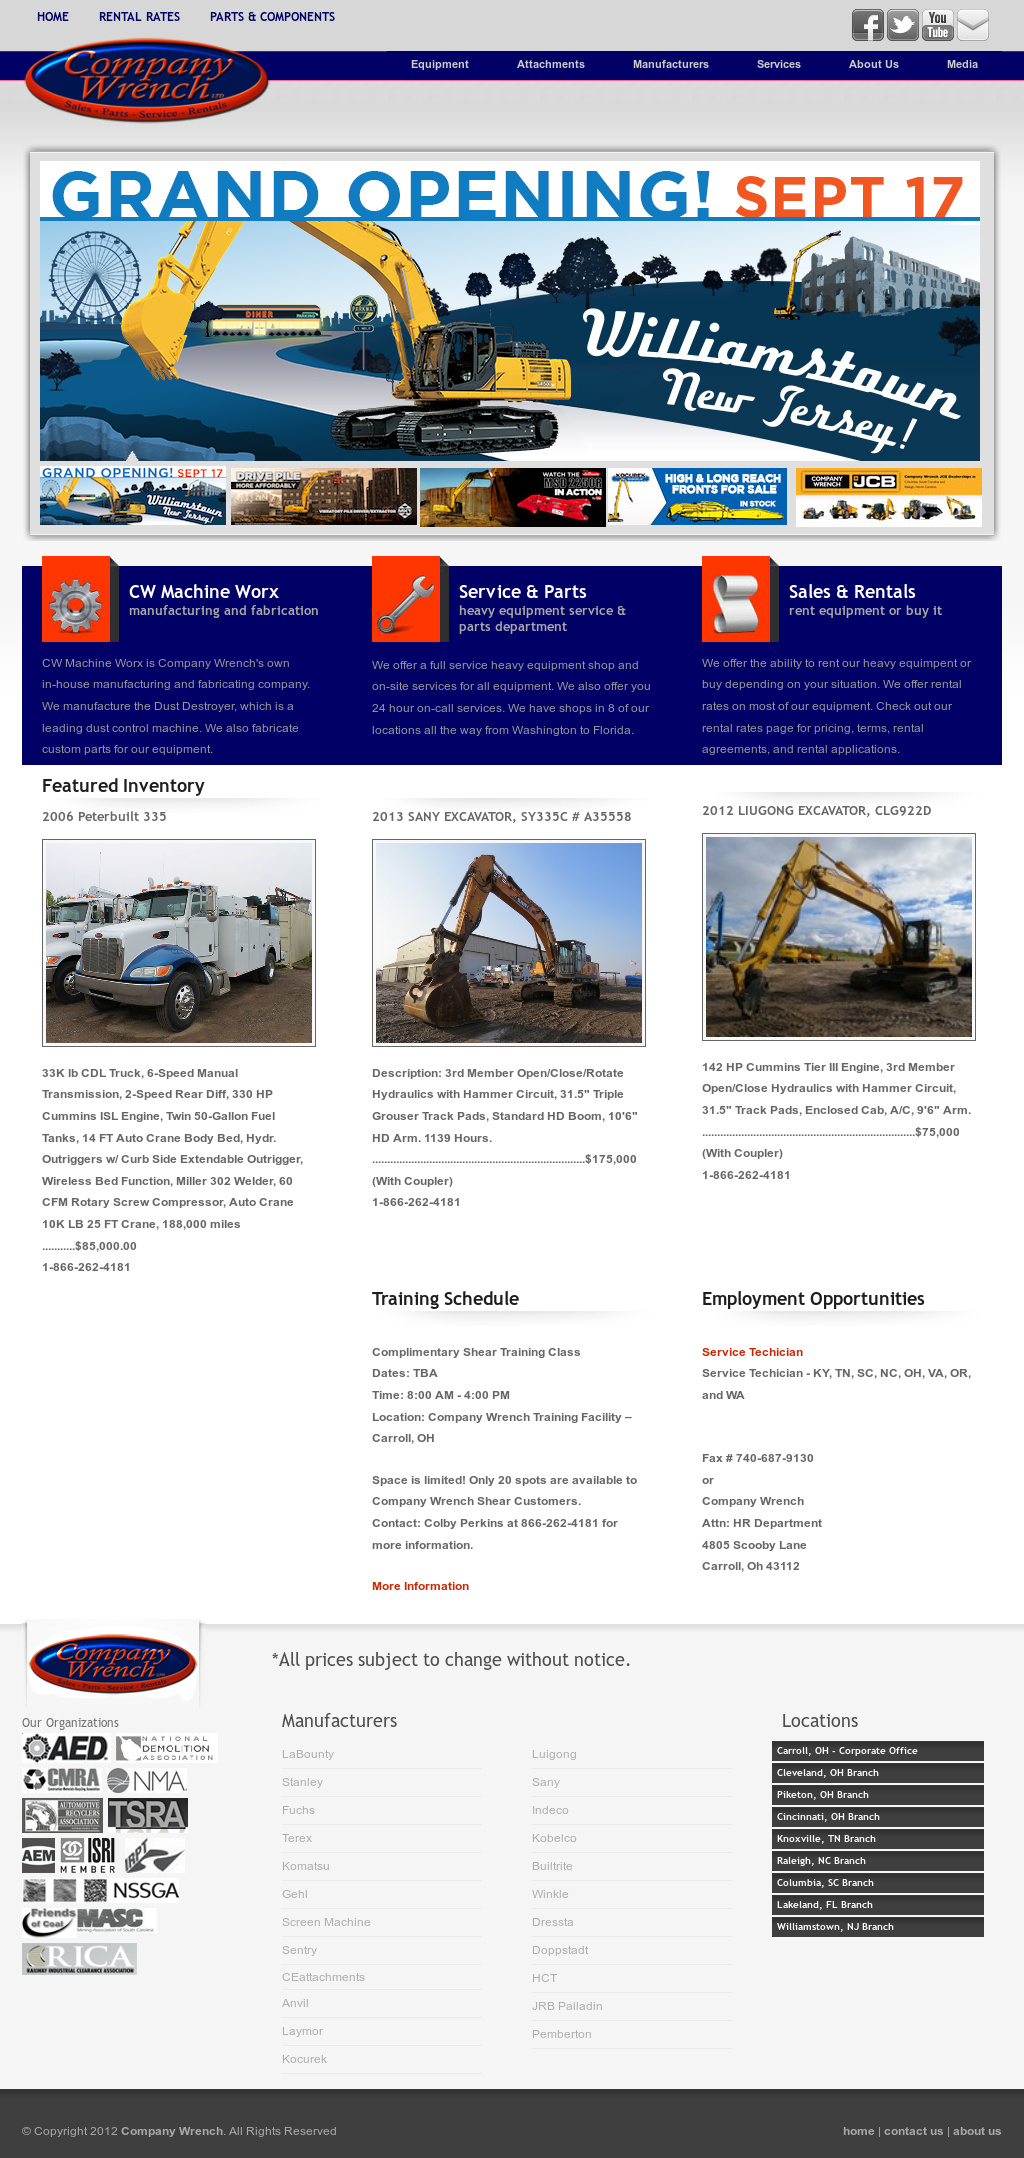 Companywrench Competitors, Revenue and Employees - Owler Company Profile